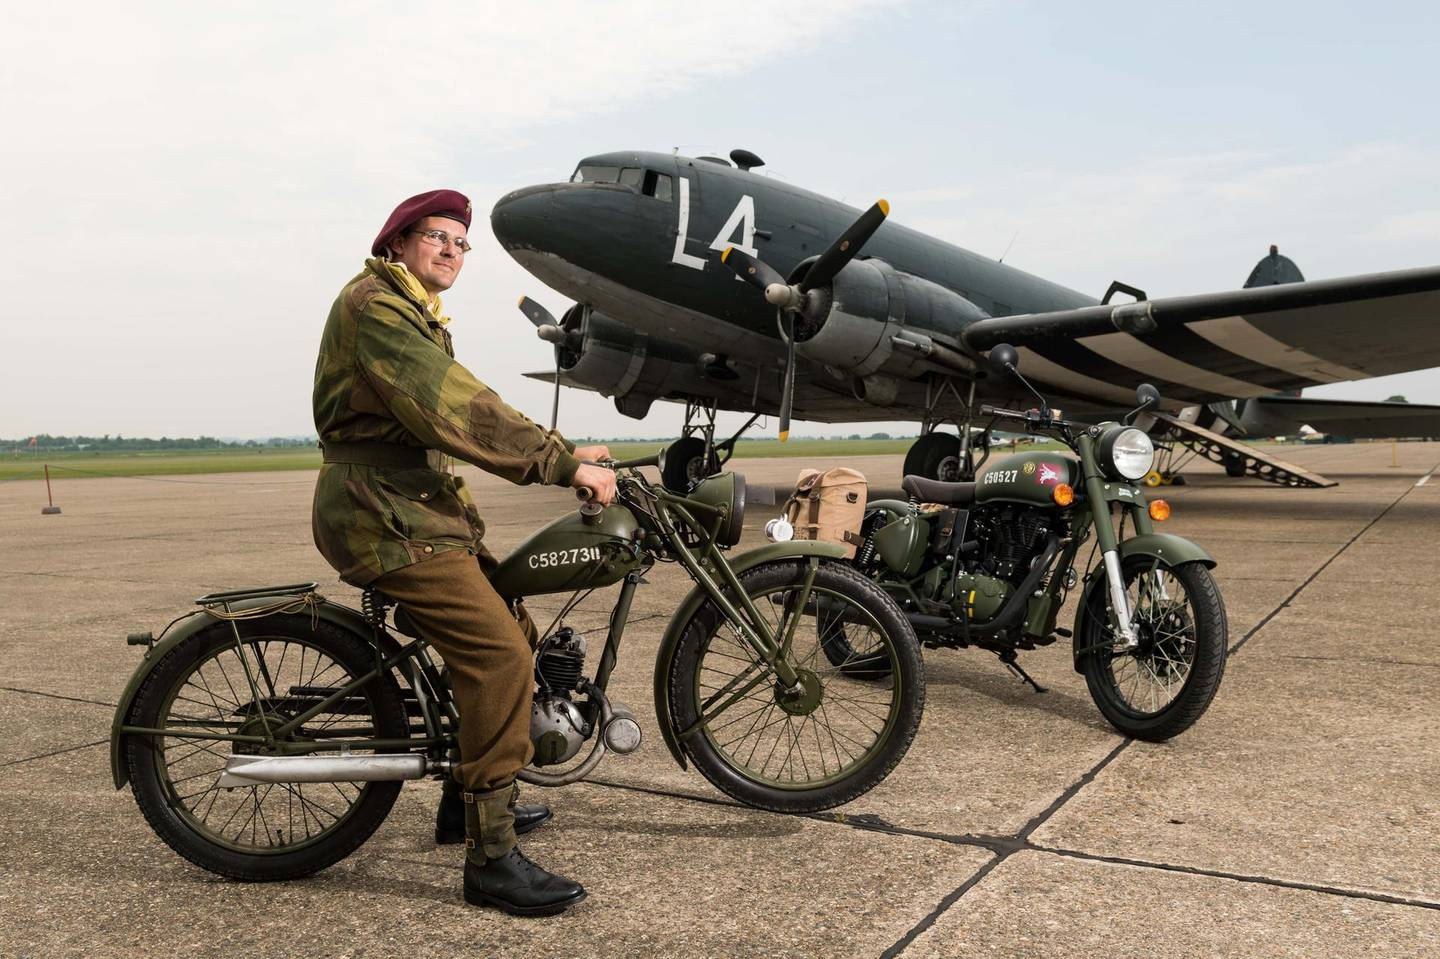 DUXFORD, ENGLAND - May 21:  A member of the Living History reenactment group poses with both the original Royal Enfield Flying Flea motorcycle and the 'Classic 500 Pegasus' motorcycle at IWM Duxford on May 21, 2018 in Duxford, England.  A new limited edition Royal Enfield 'Classic 500 Pegasus' motorcycle pays tribute to the original Royal Enfield Flying Flea, the legendary lightweight World War Two British paratroopers' motorcycle.  (Photo by Ian Gavan/Getty Images for Royal Enfield)